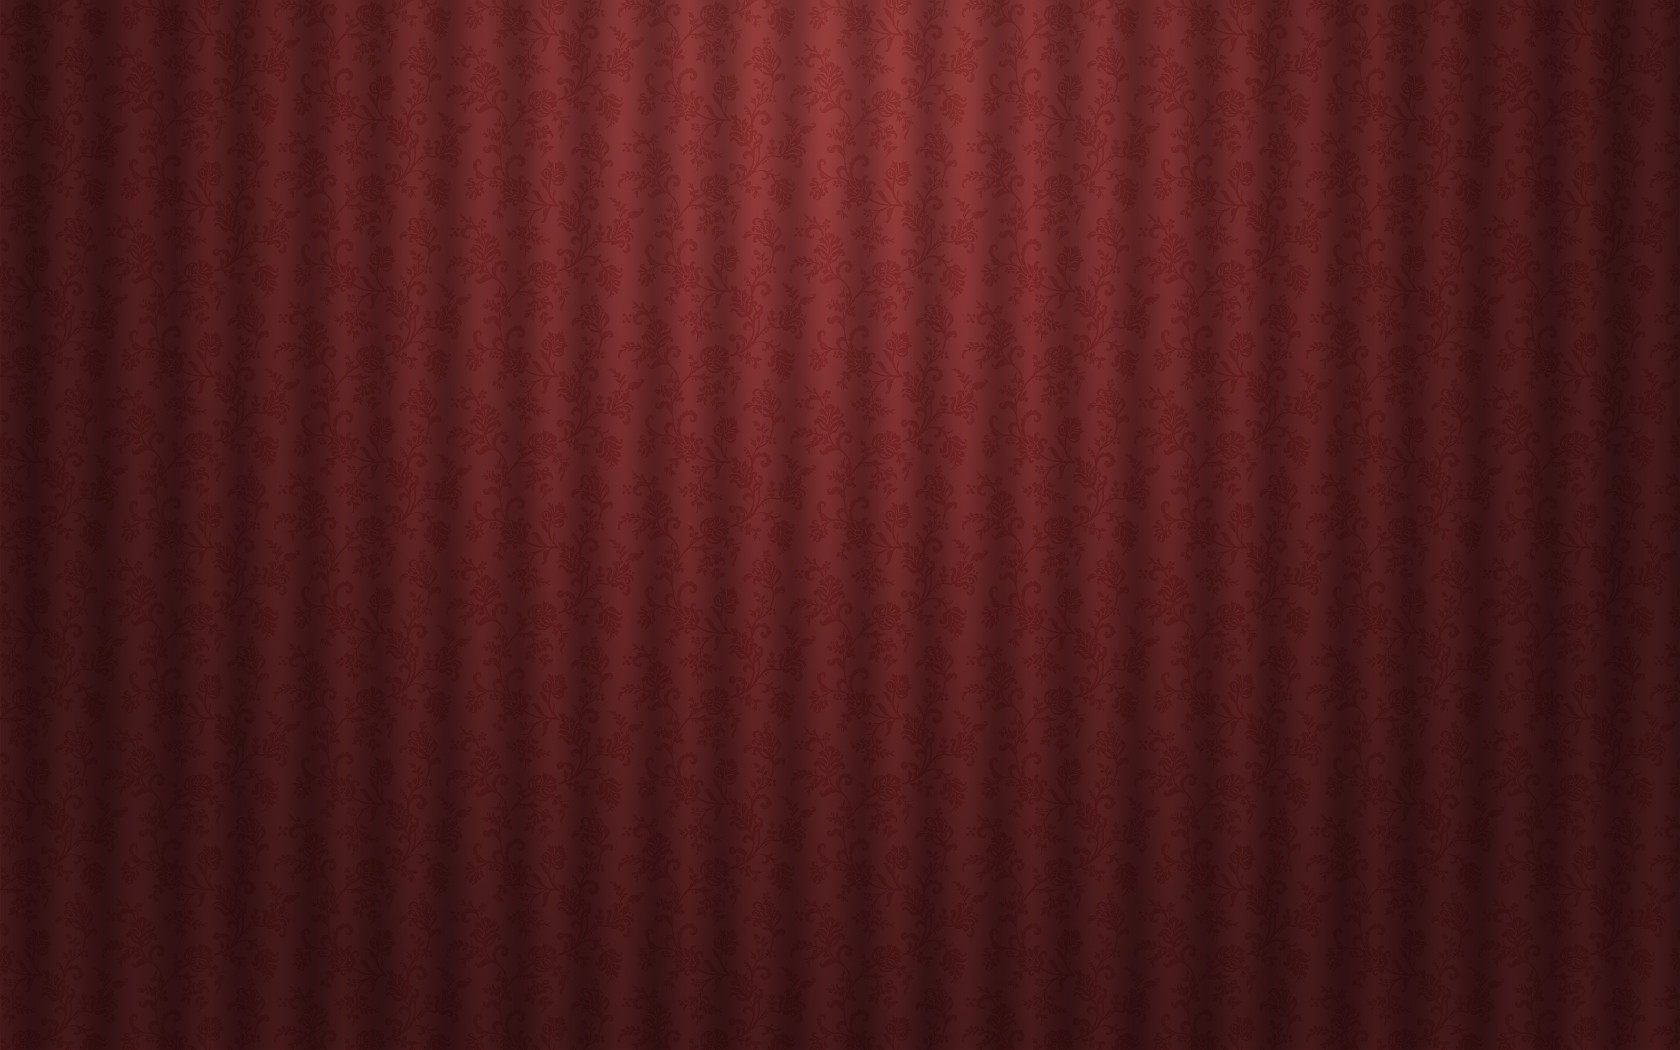 Red Textures Curtains Floral Wallpaper 1680x1050 63189